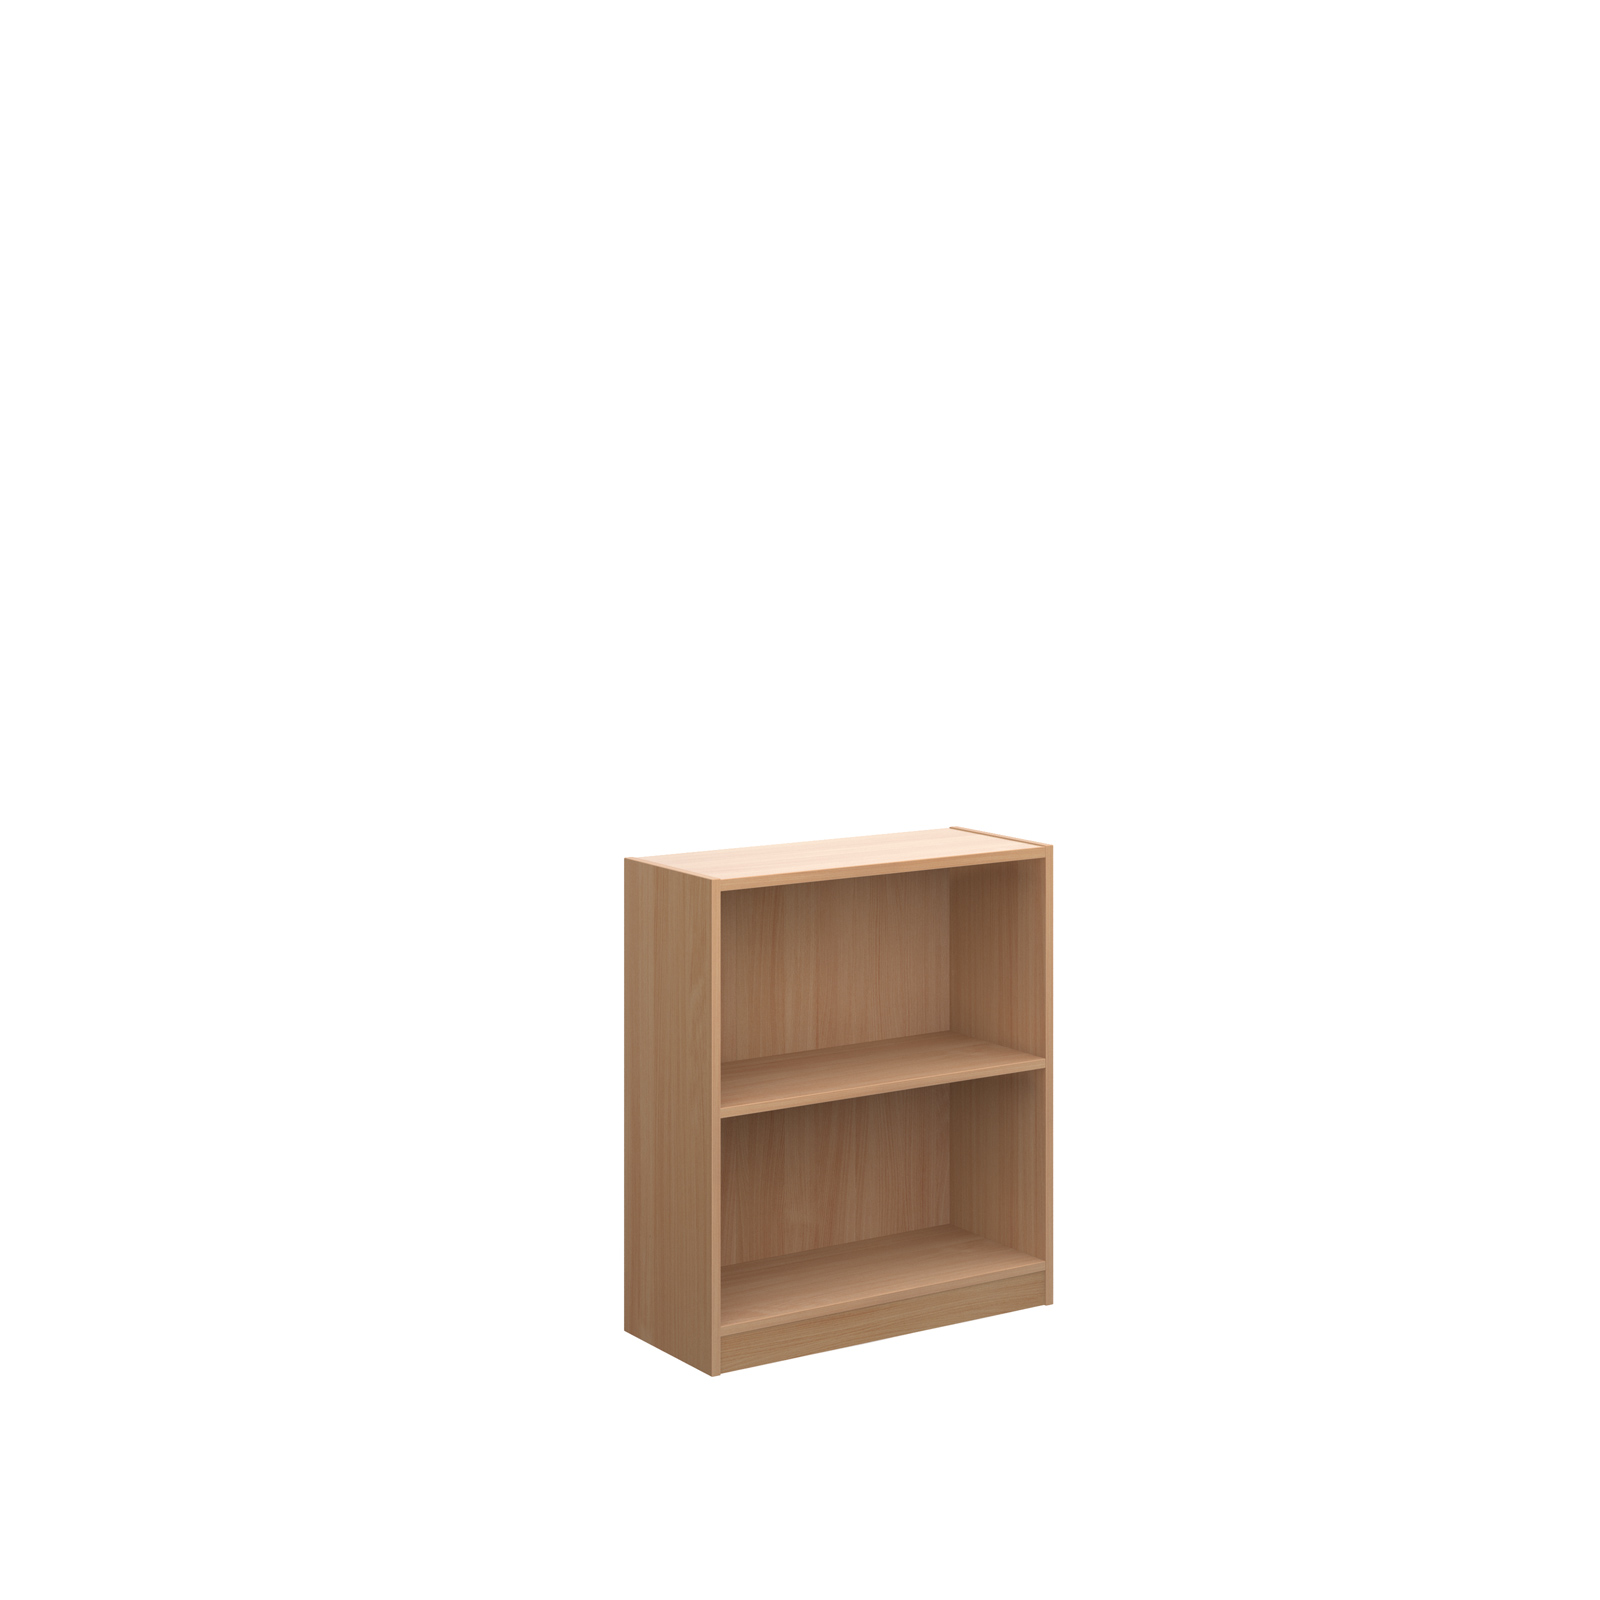 Economy bookcase 720mm high with 1 shelf - beech